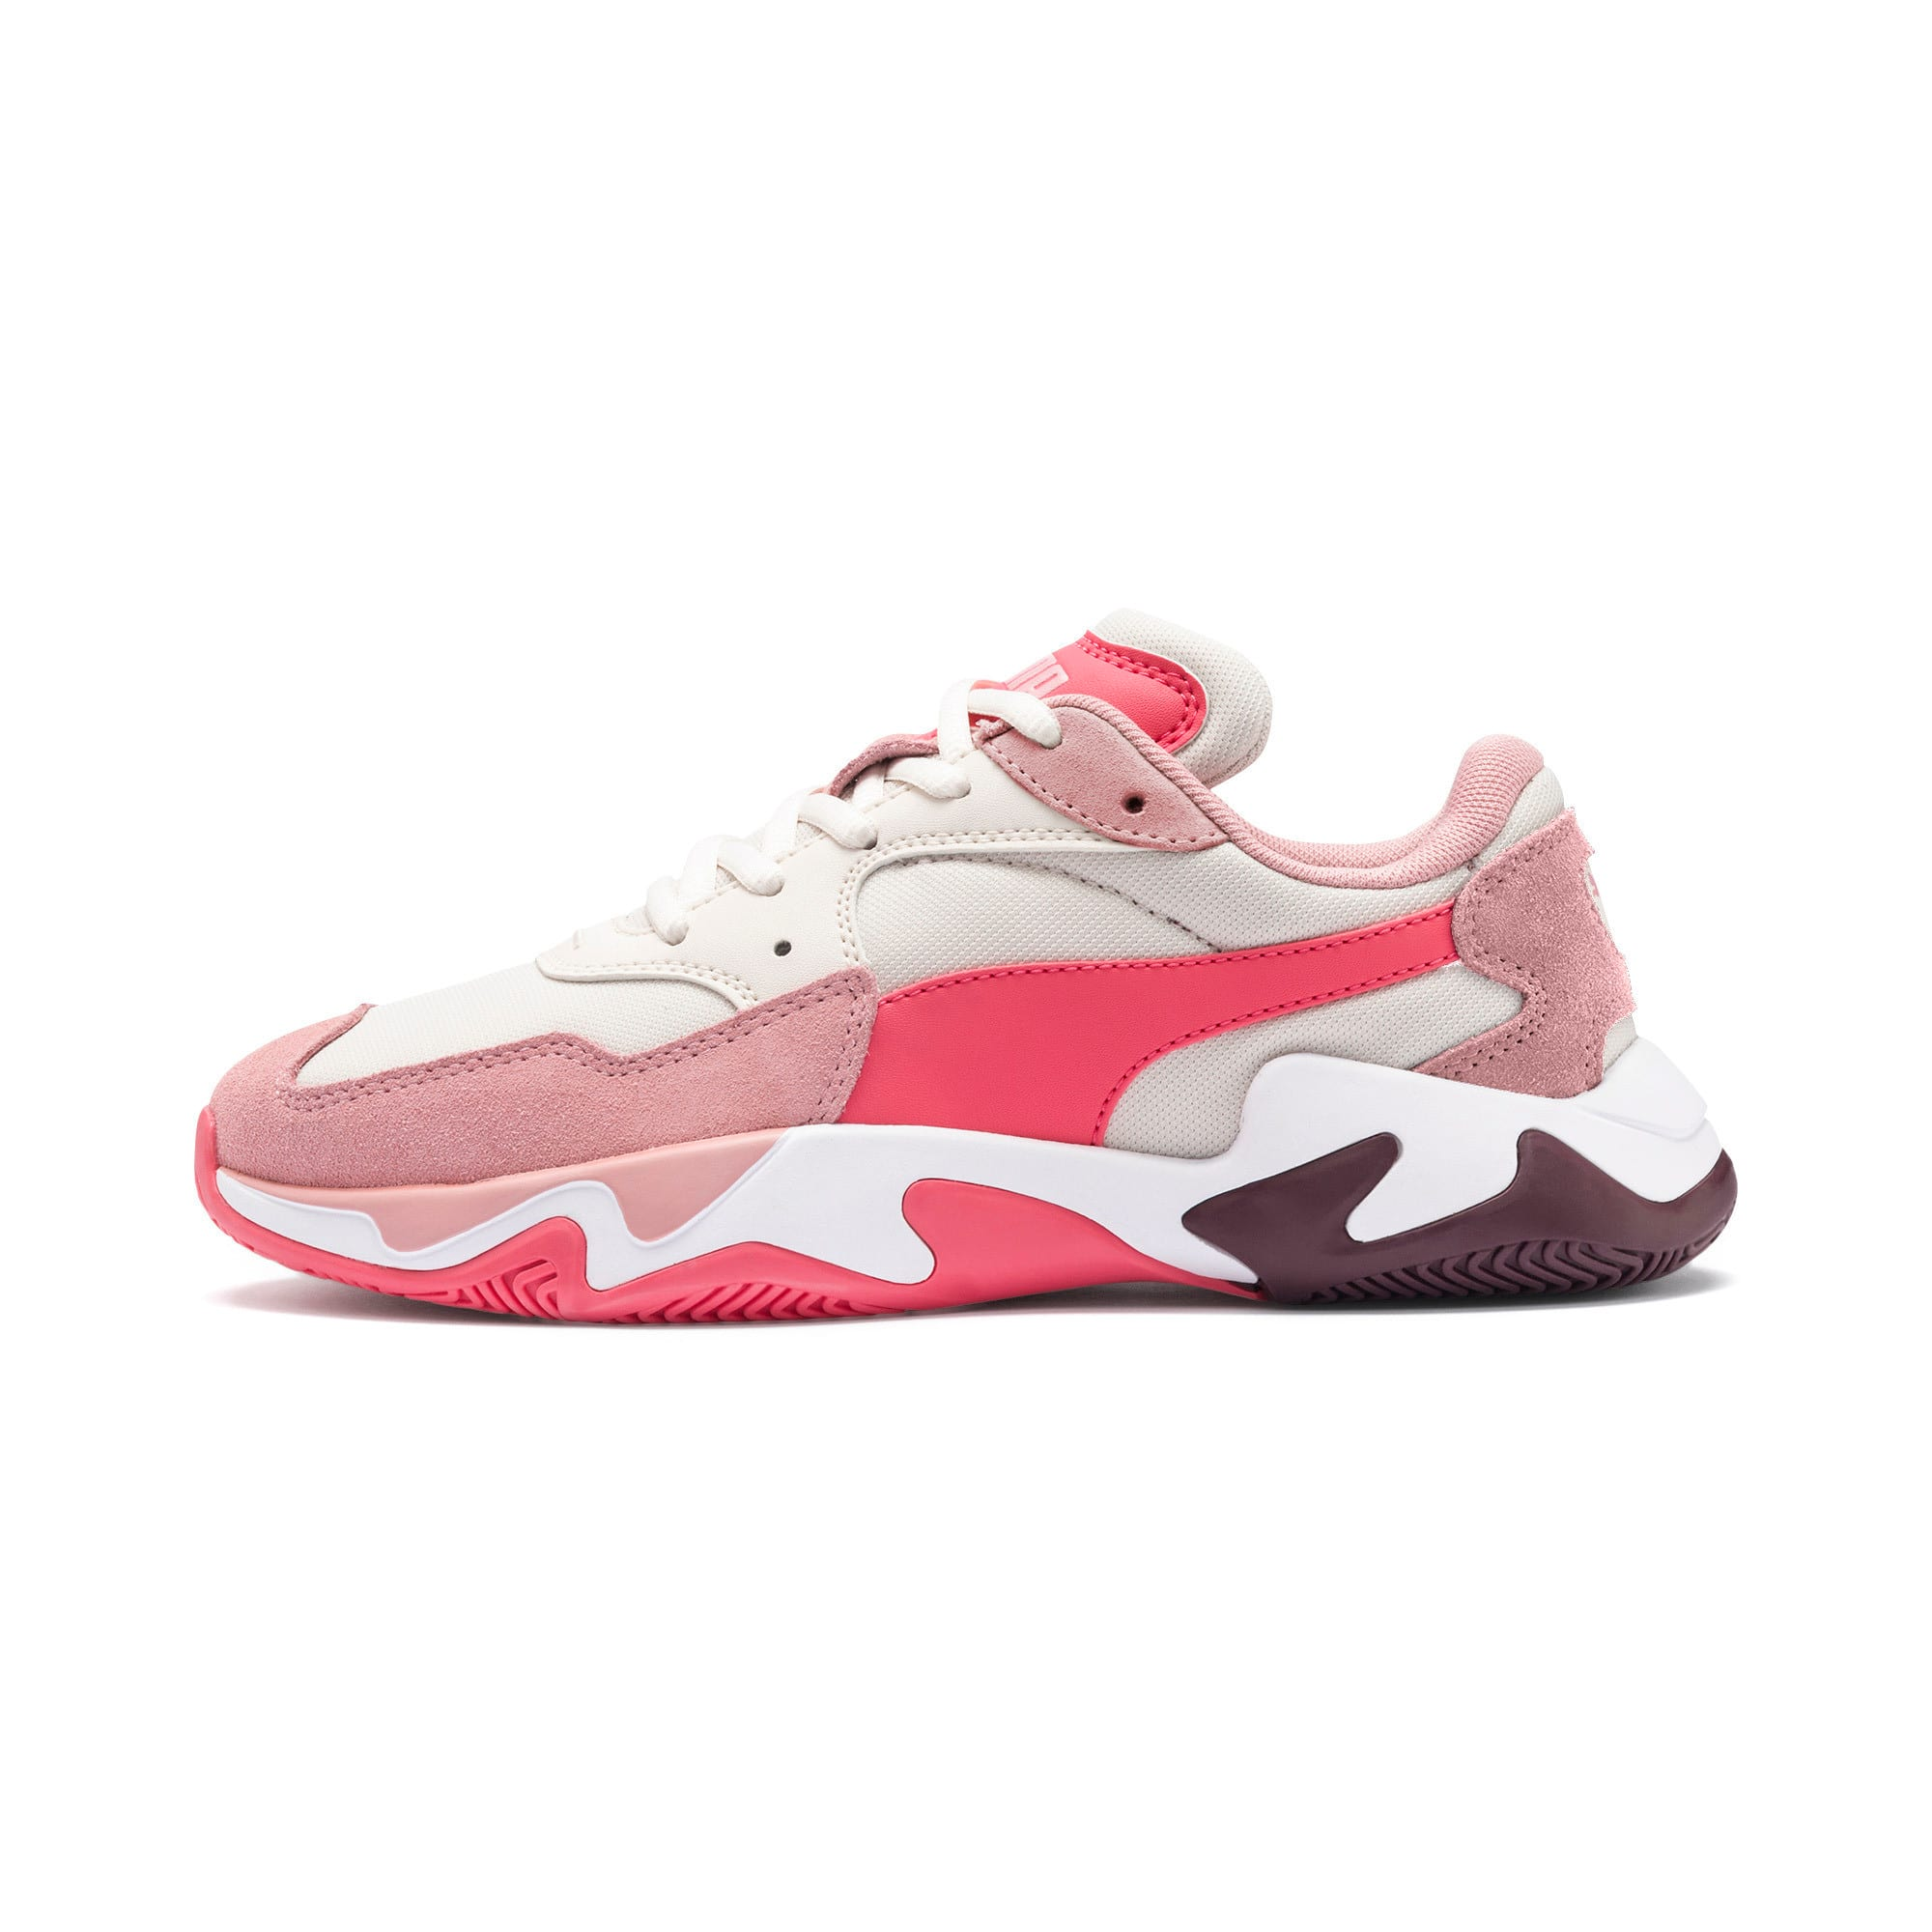 Anteprima 1 di Storm Ray Youth Trainers, Bridal Rose-Pastel Parchment, medio